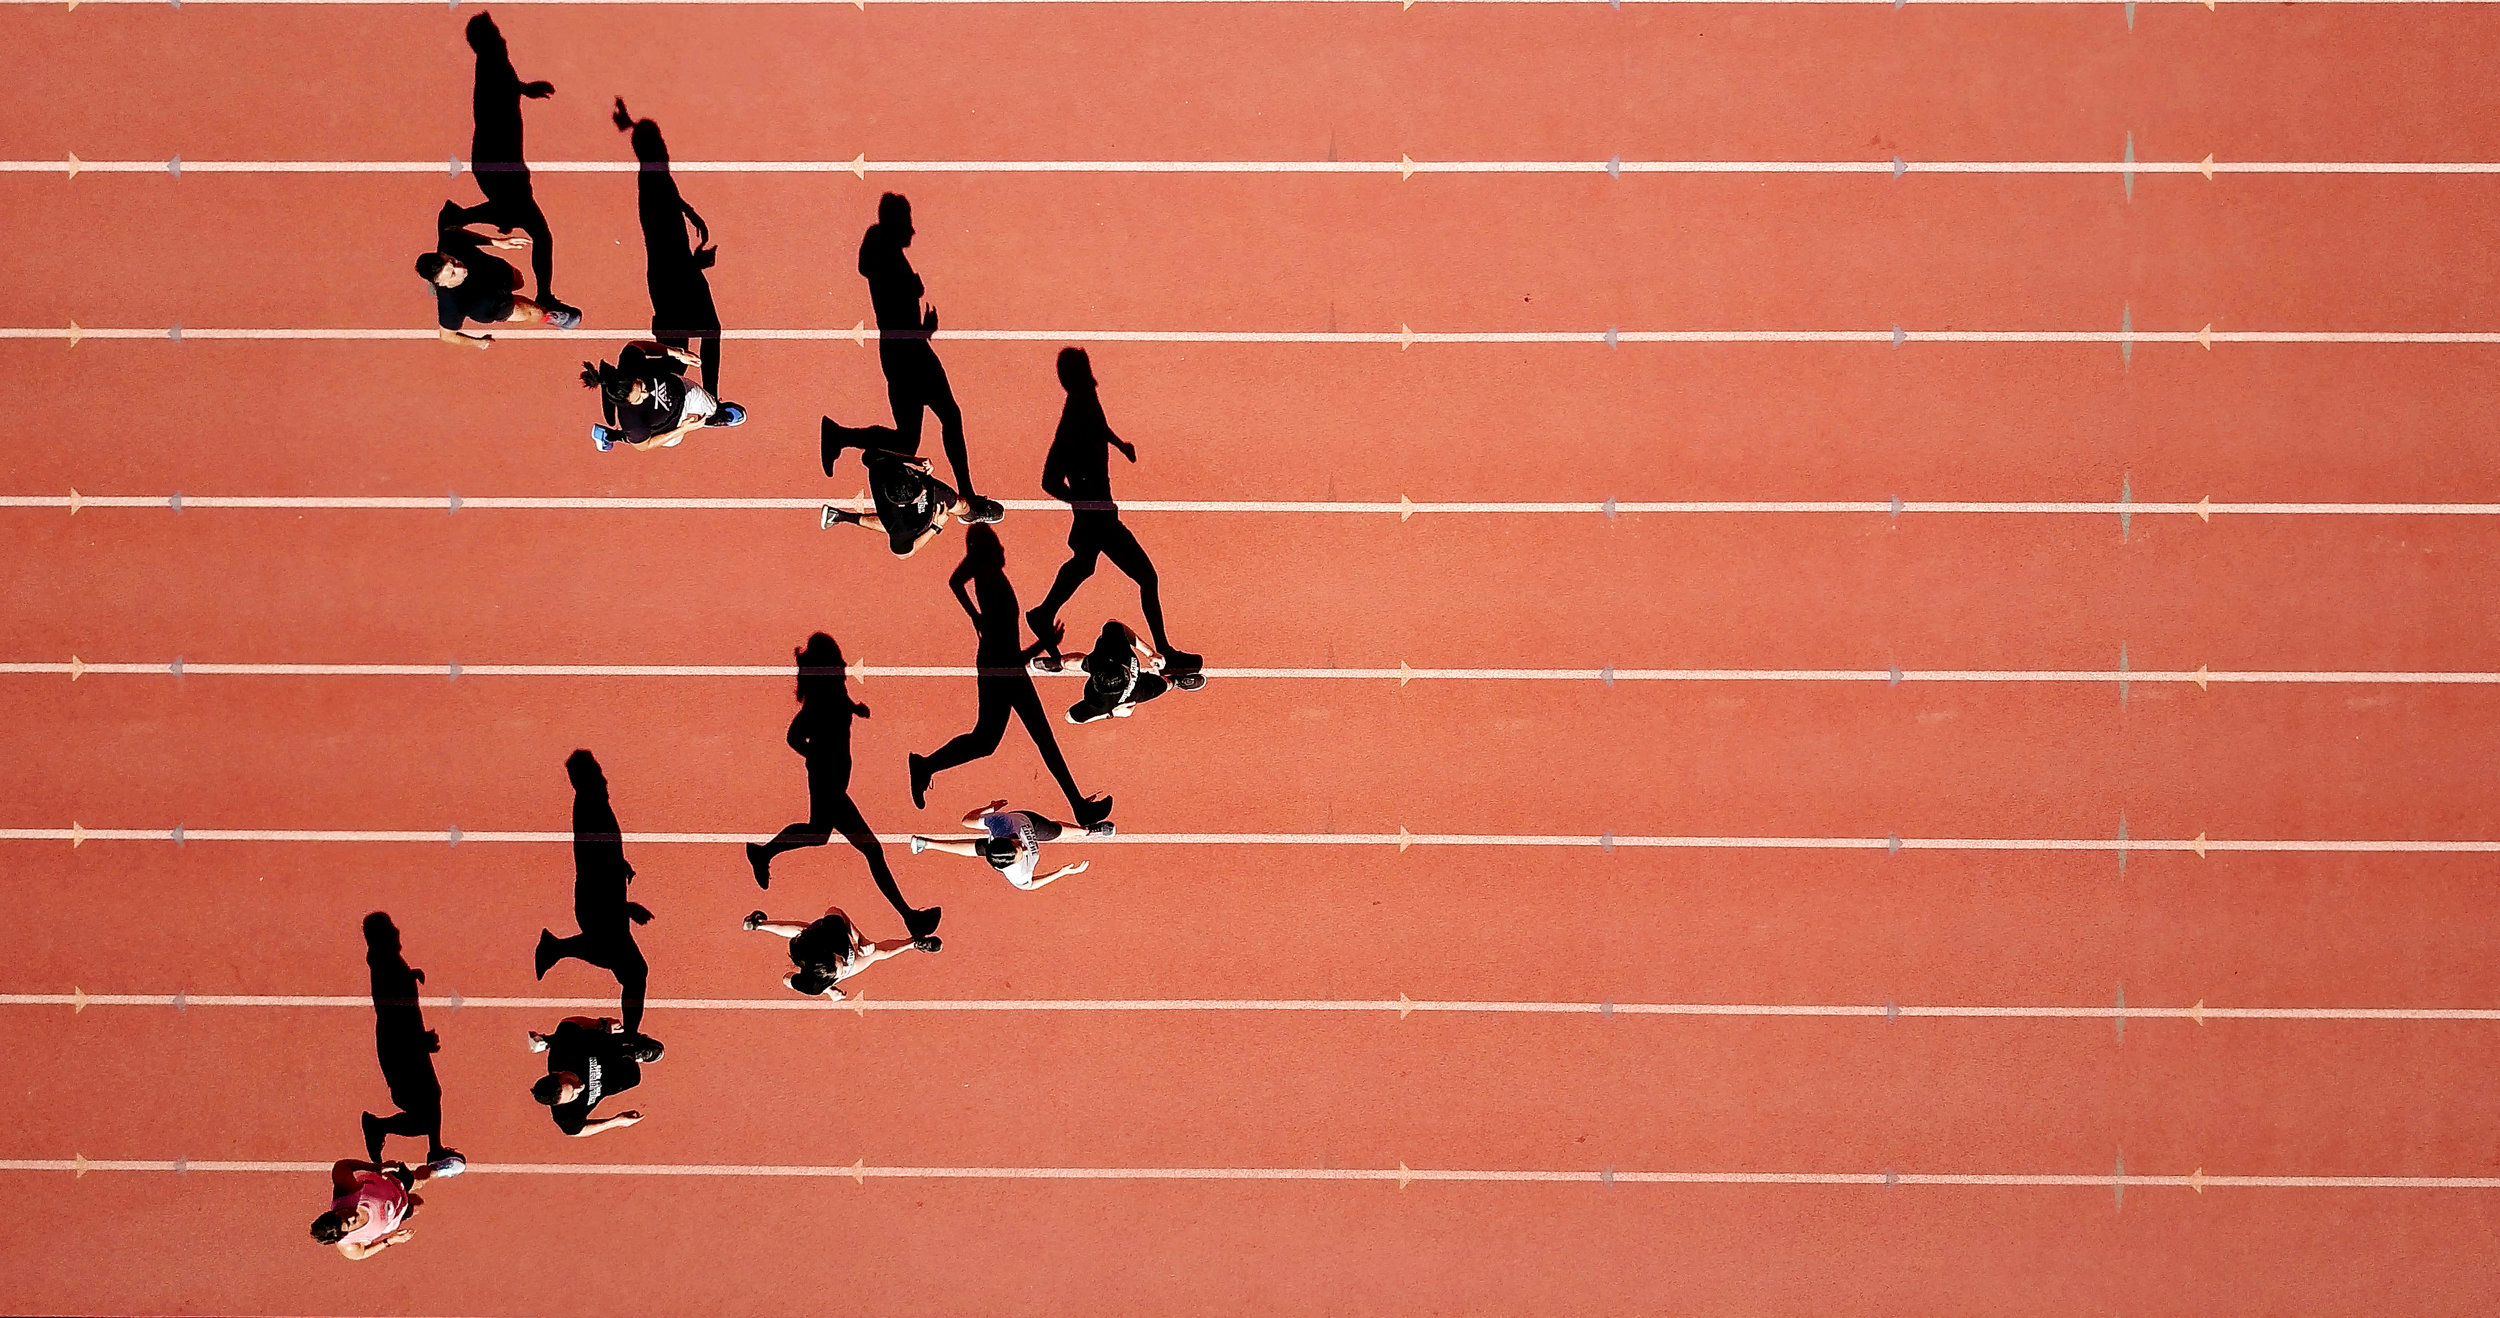 Mext_Consulting_Firm_Melbourne_Trust_Running_Track_Sales.jpg